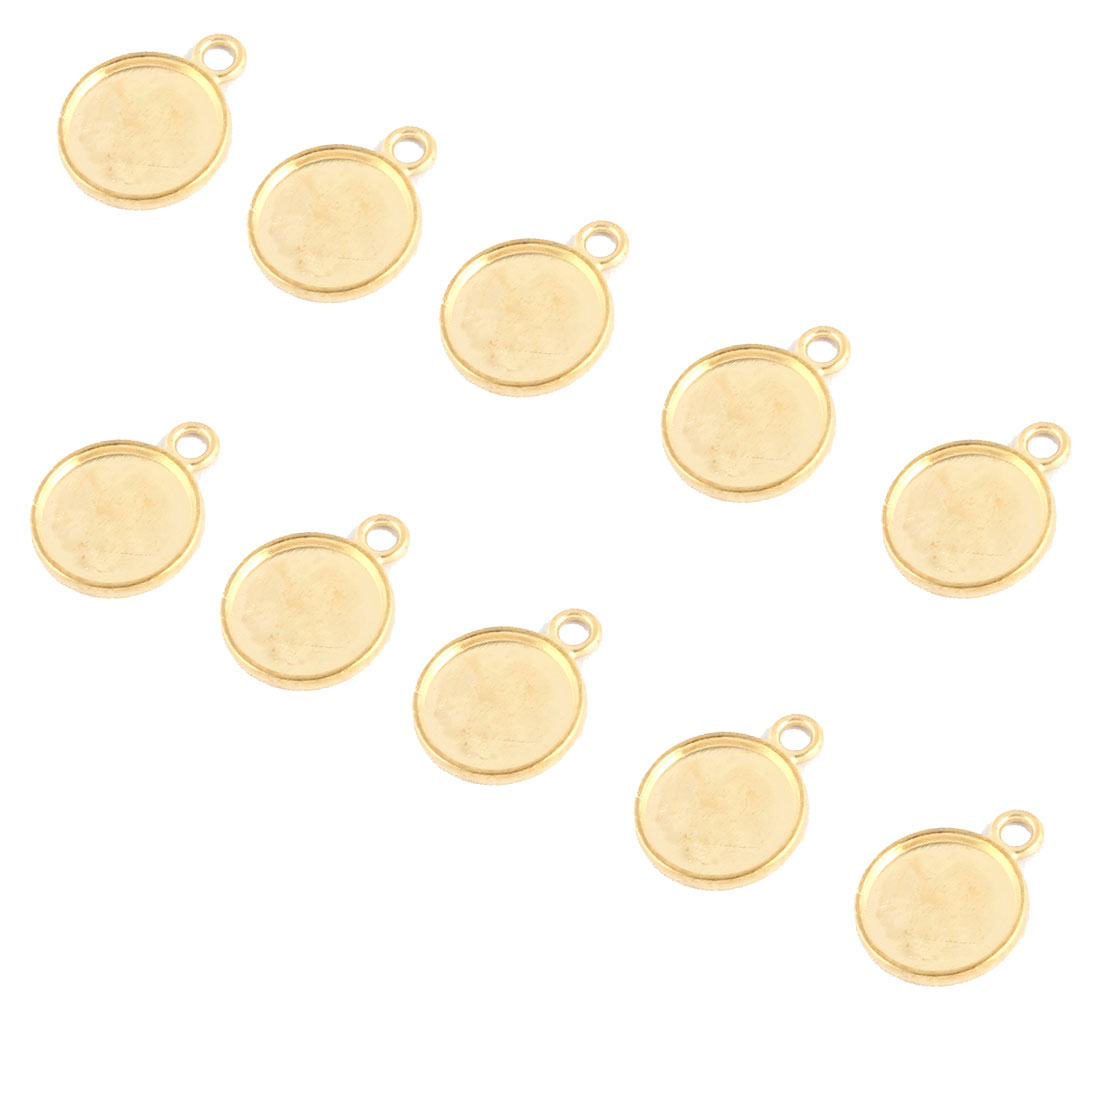 Household Copper Alloy DIY Retro Style Round Pendant Trays Gold Tone 14mm Inner Dia 10 Pcs